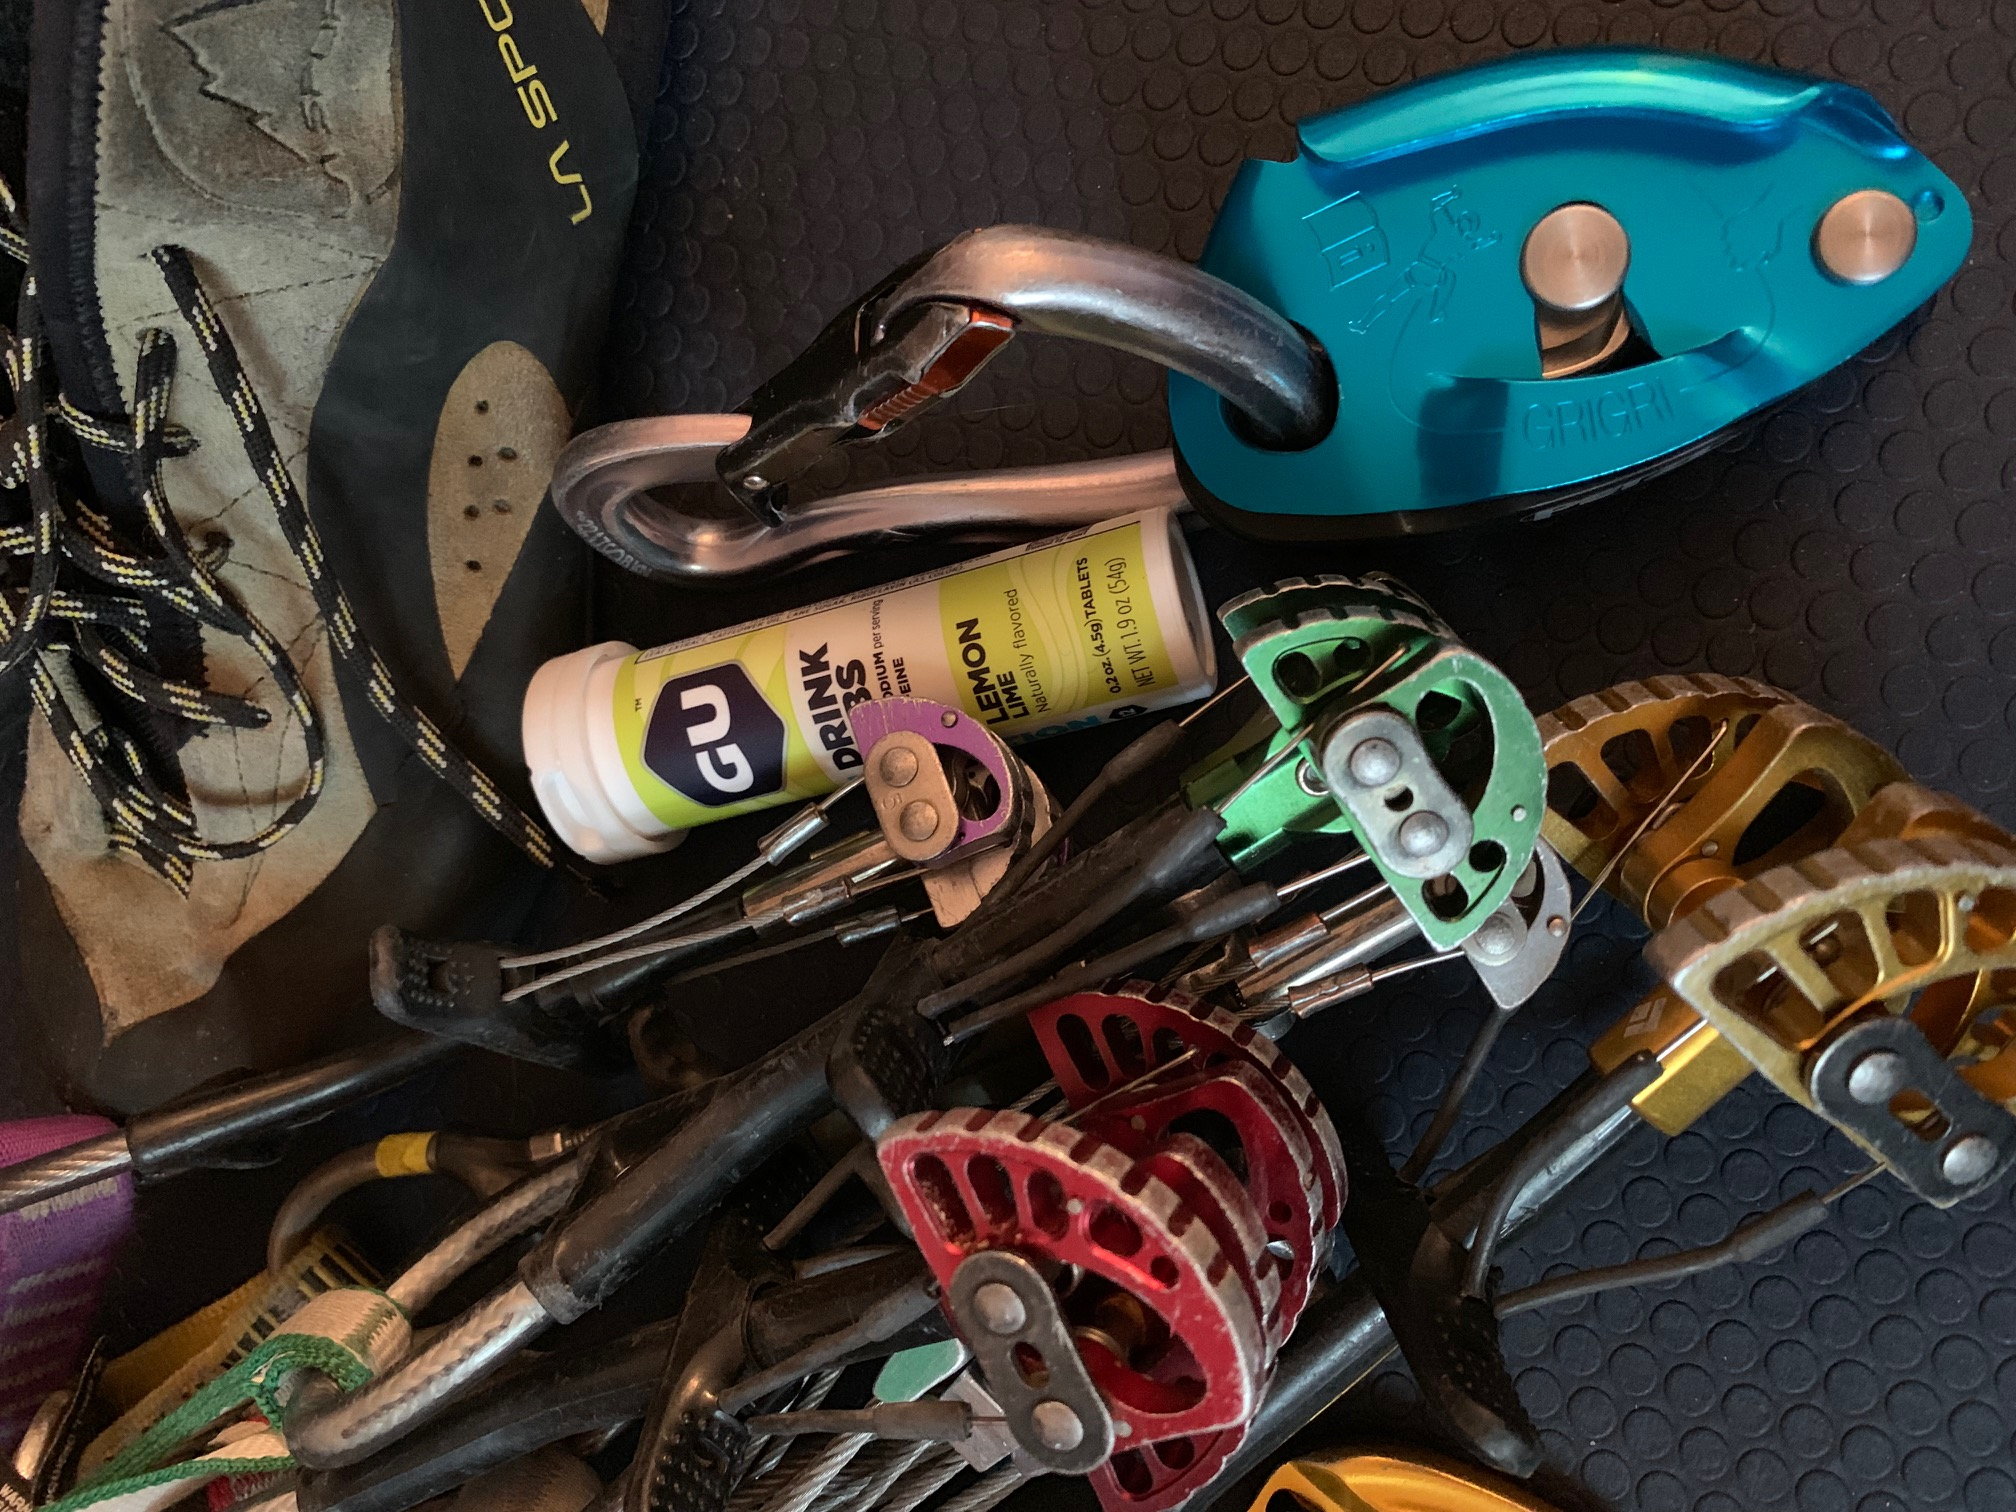 GU Hydration Drink Tabs in amongst Karen Bockel's climbing gear